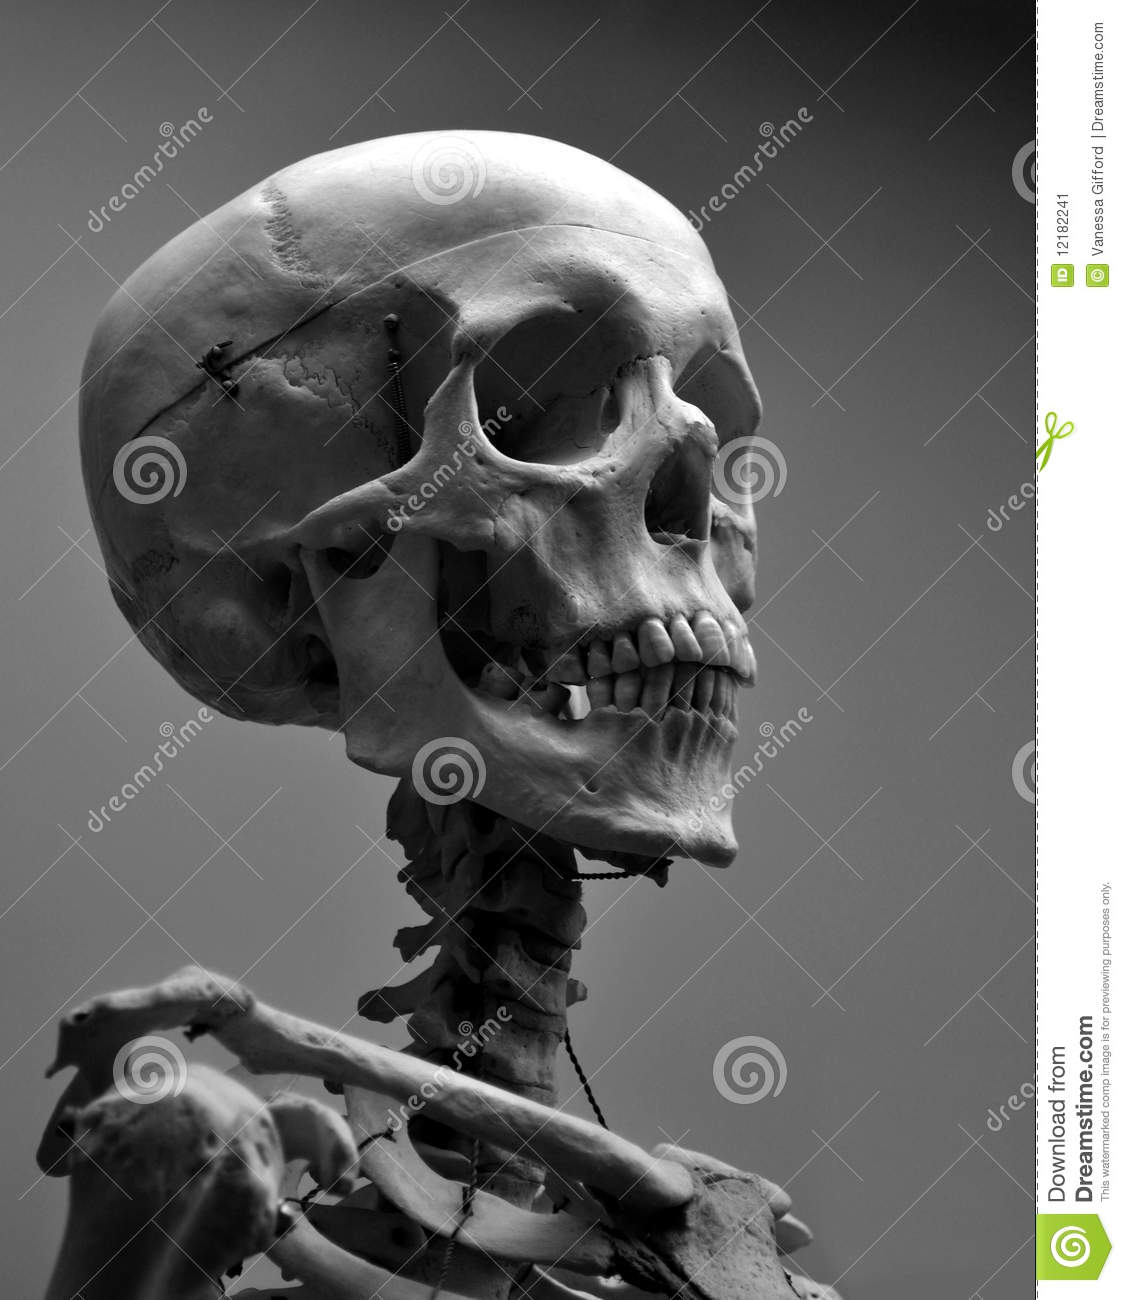 museum quality human skull skeleton stock image image of ancient